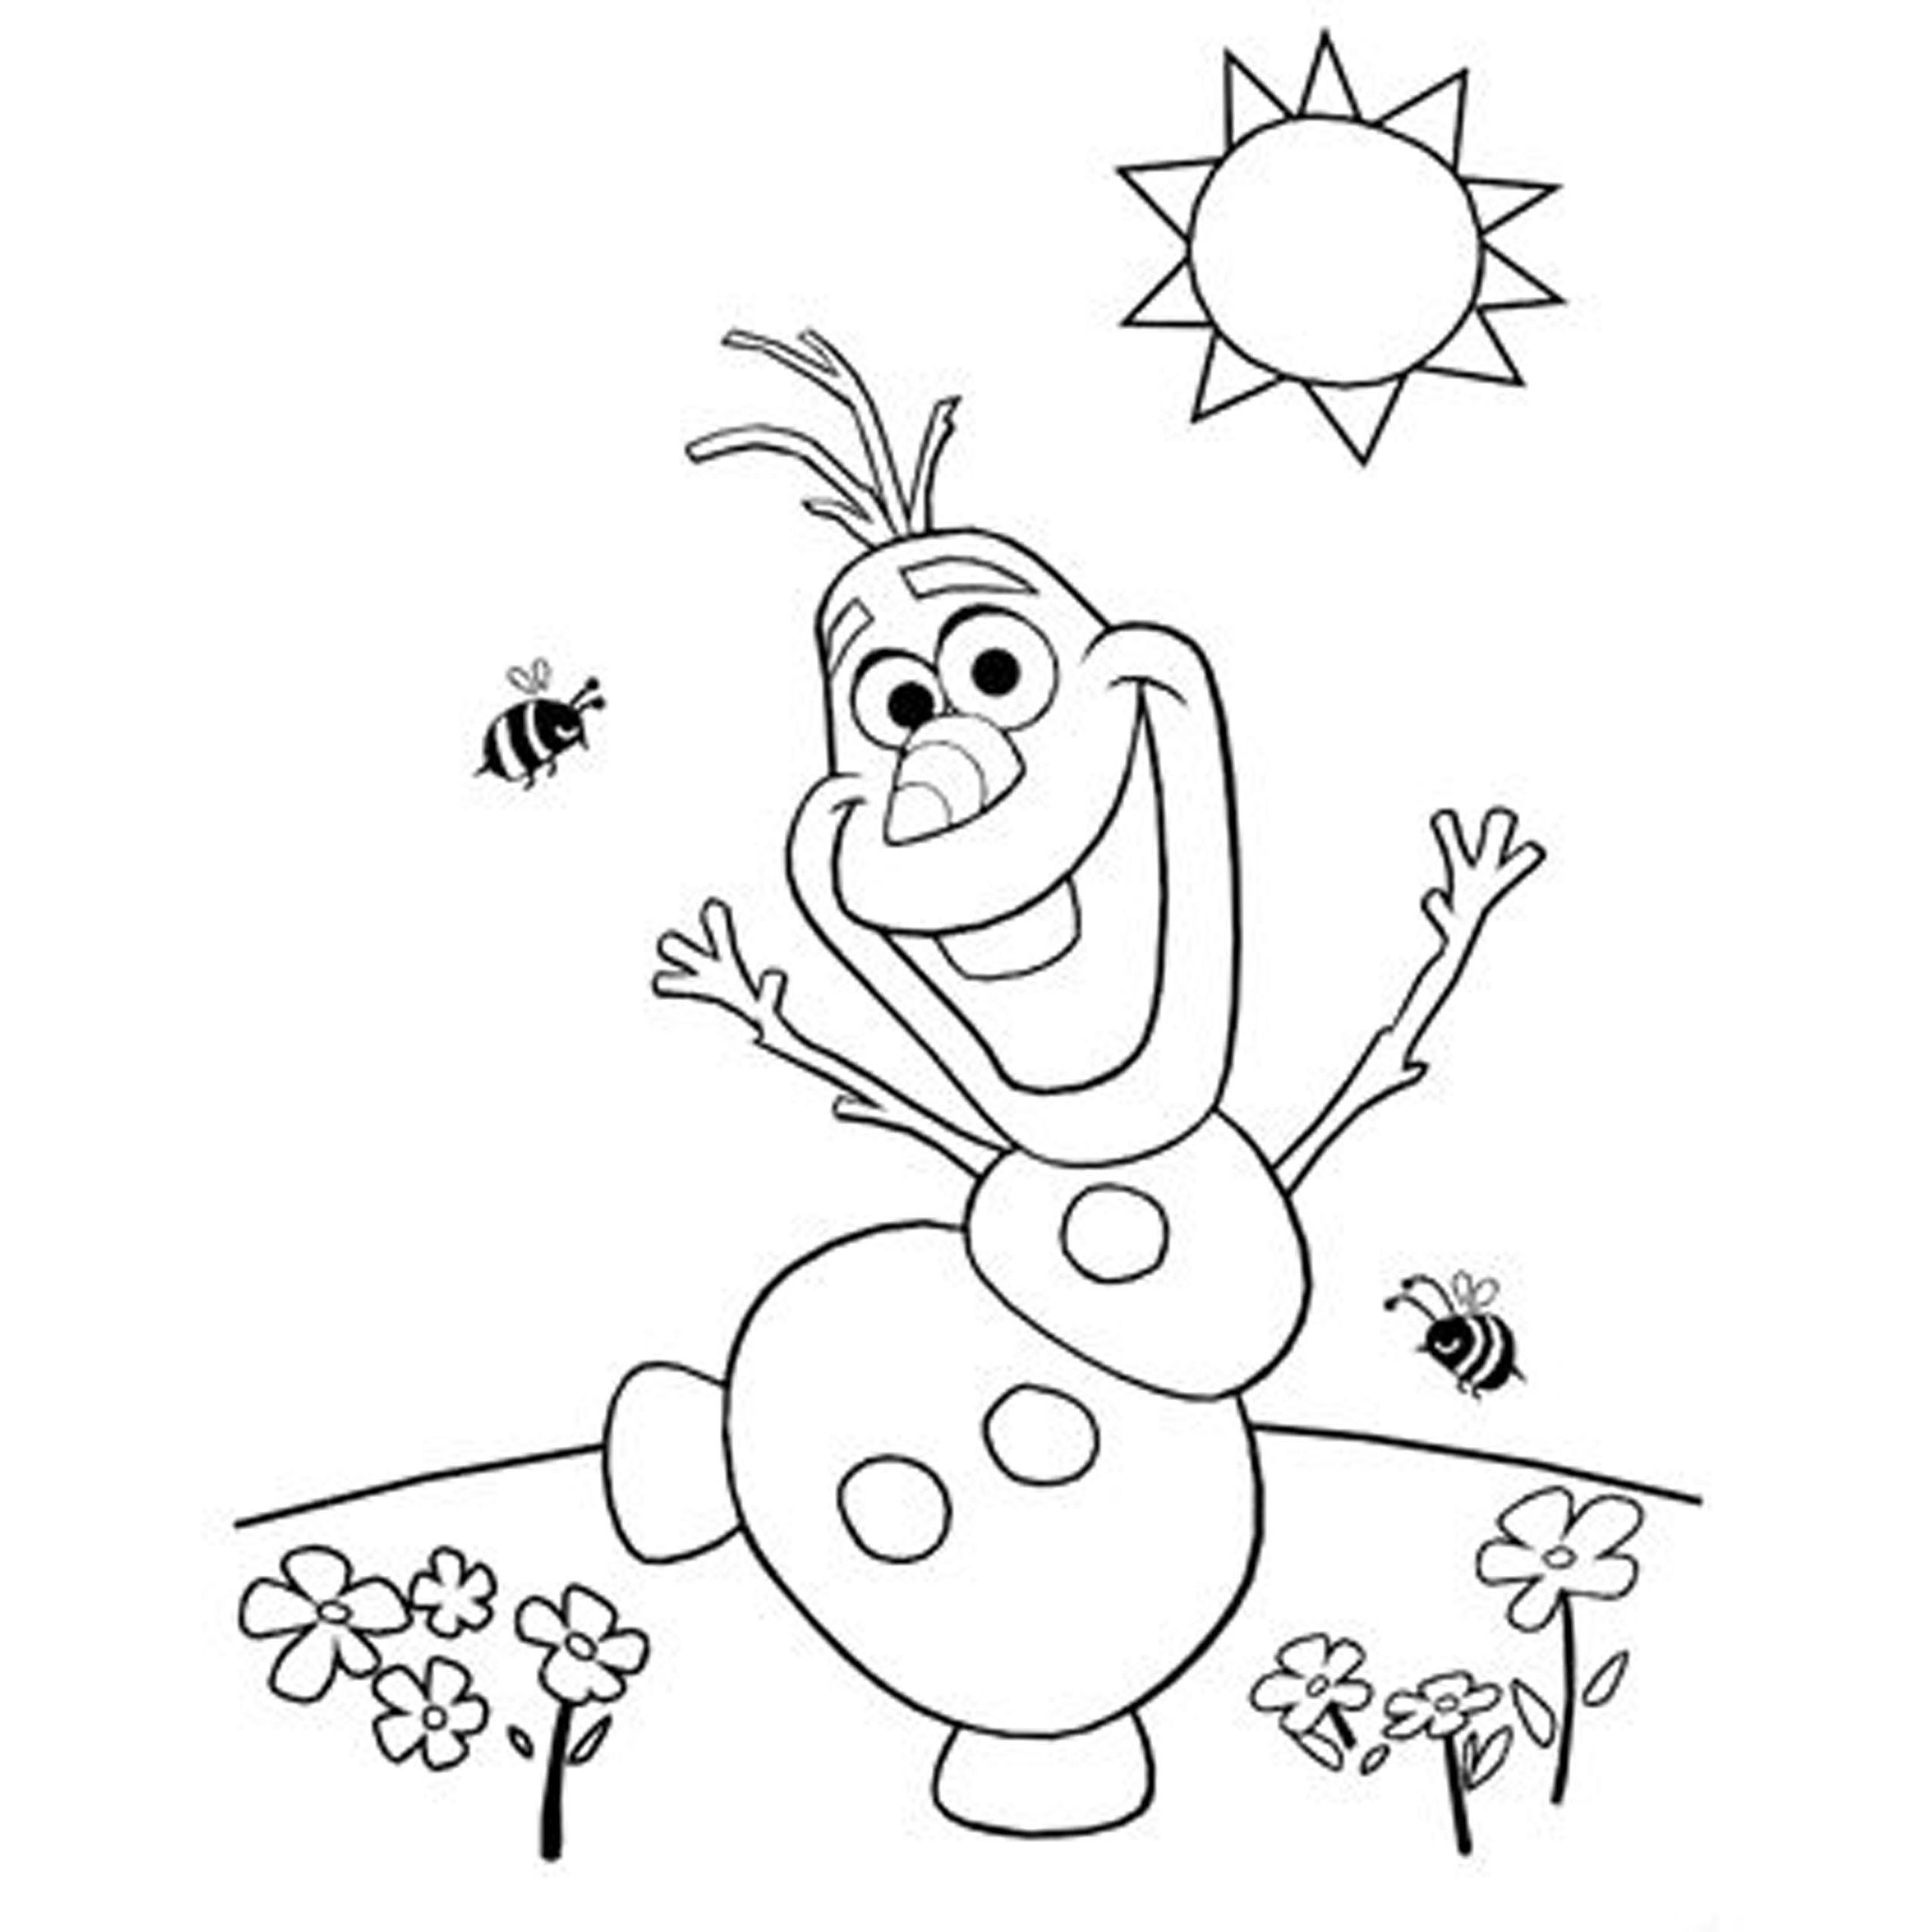 Frozen 2 coloring pages - Coloring Pages Frozen To Print 2 Coloring Pages Frozen For Kids 2 2 Frozen Coloring